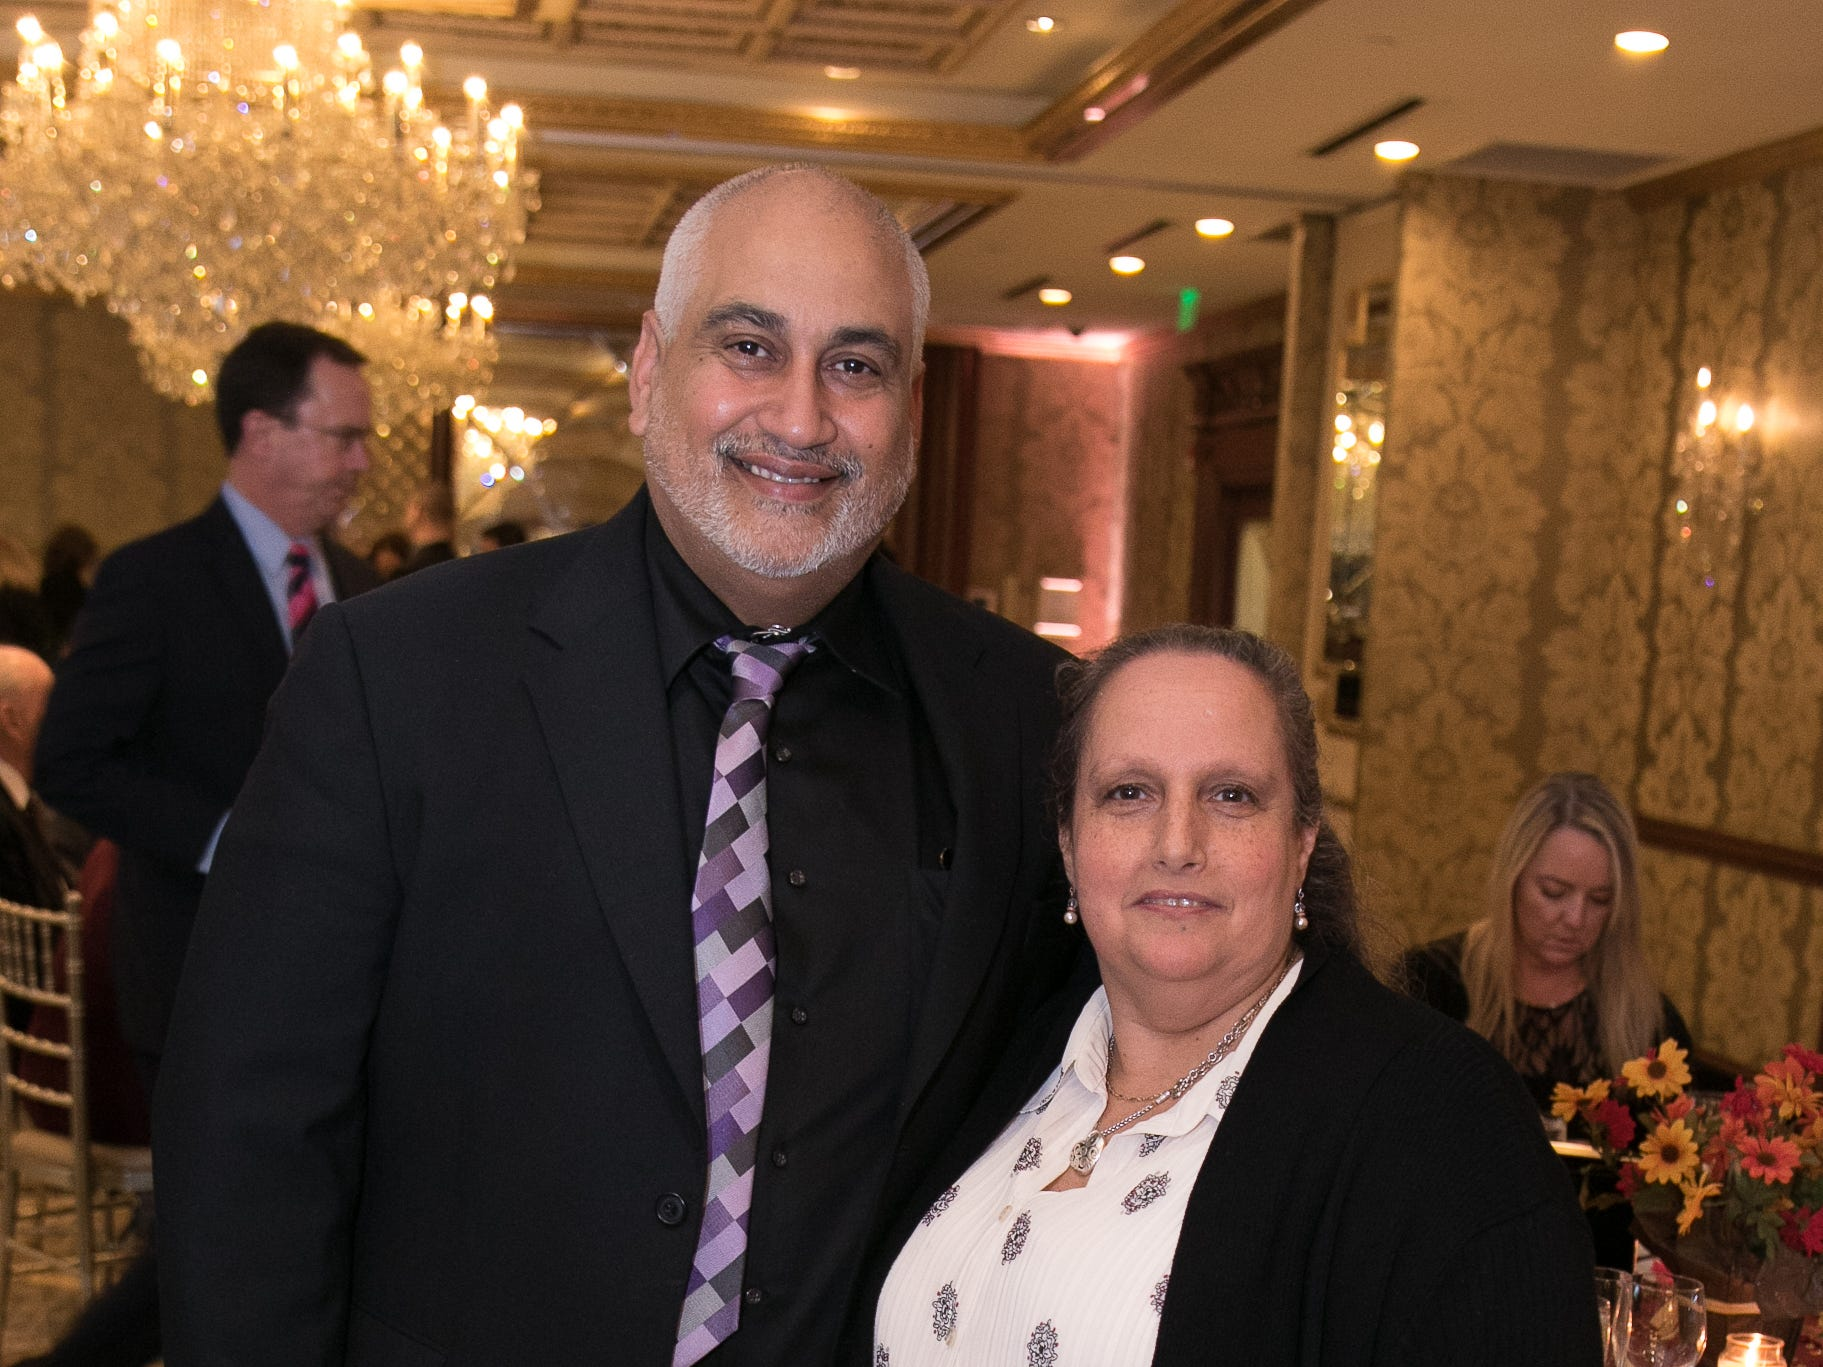 Pete Hernandez, MaryAnn Descartino. Youth Consultation Service – YCS held their 100th Anniversary Celebration at Seasons in Washington Township.11/5/2018